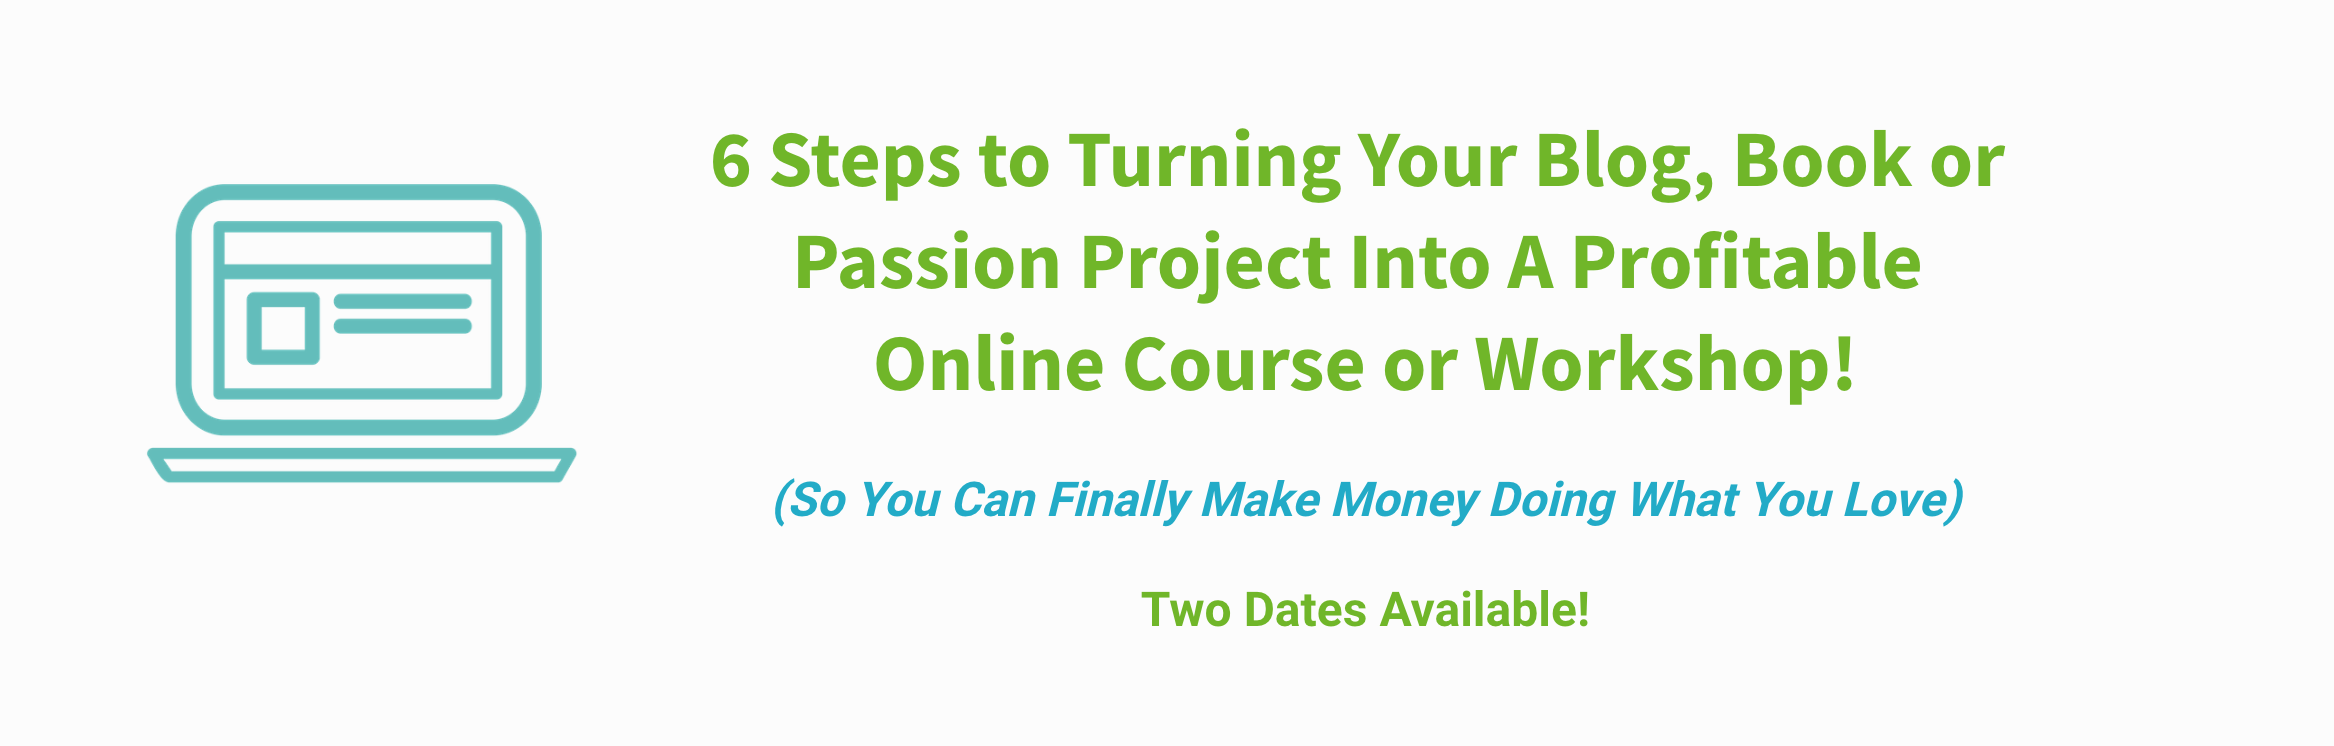 6 Steps to turning your blog, book, or passion project into a profitable online course or workshop